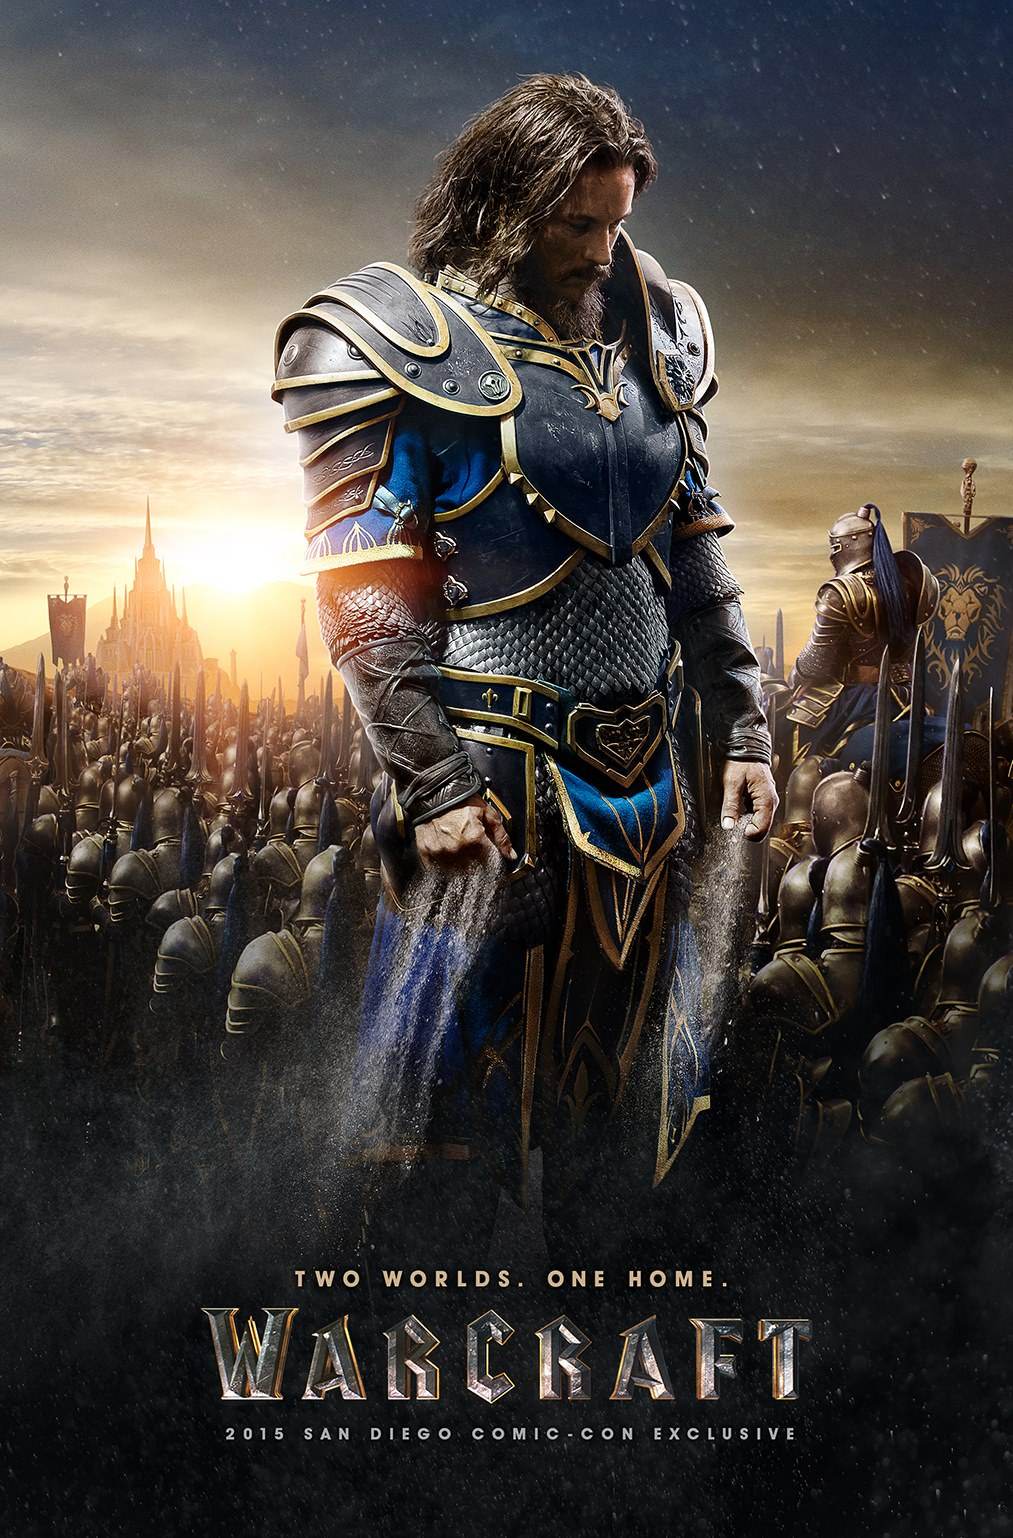 Warcraft Posters Give Us First Look At Main Characters 2